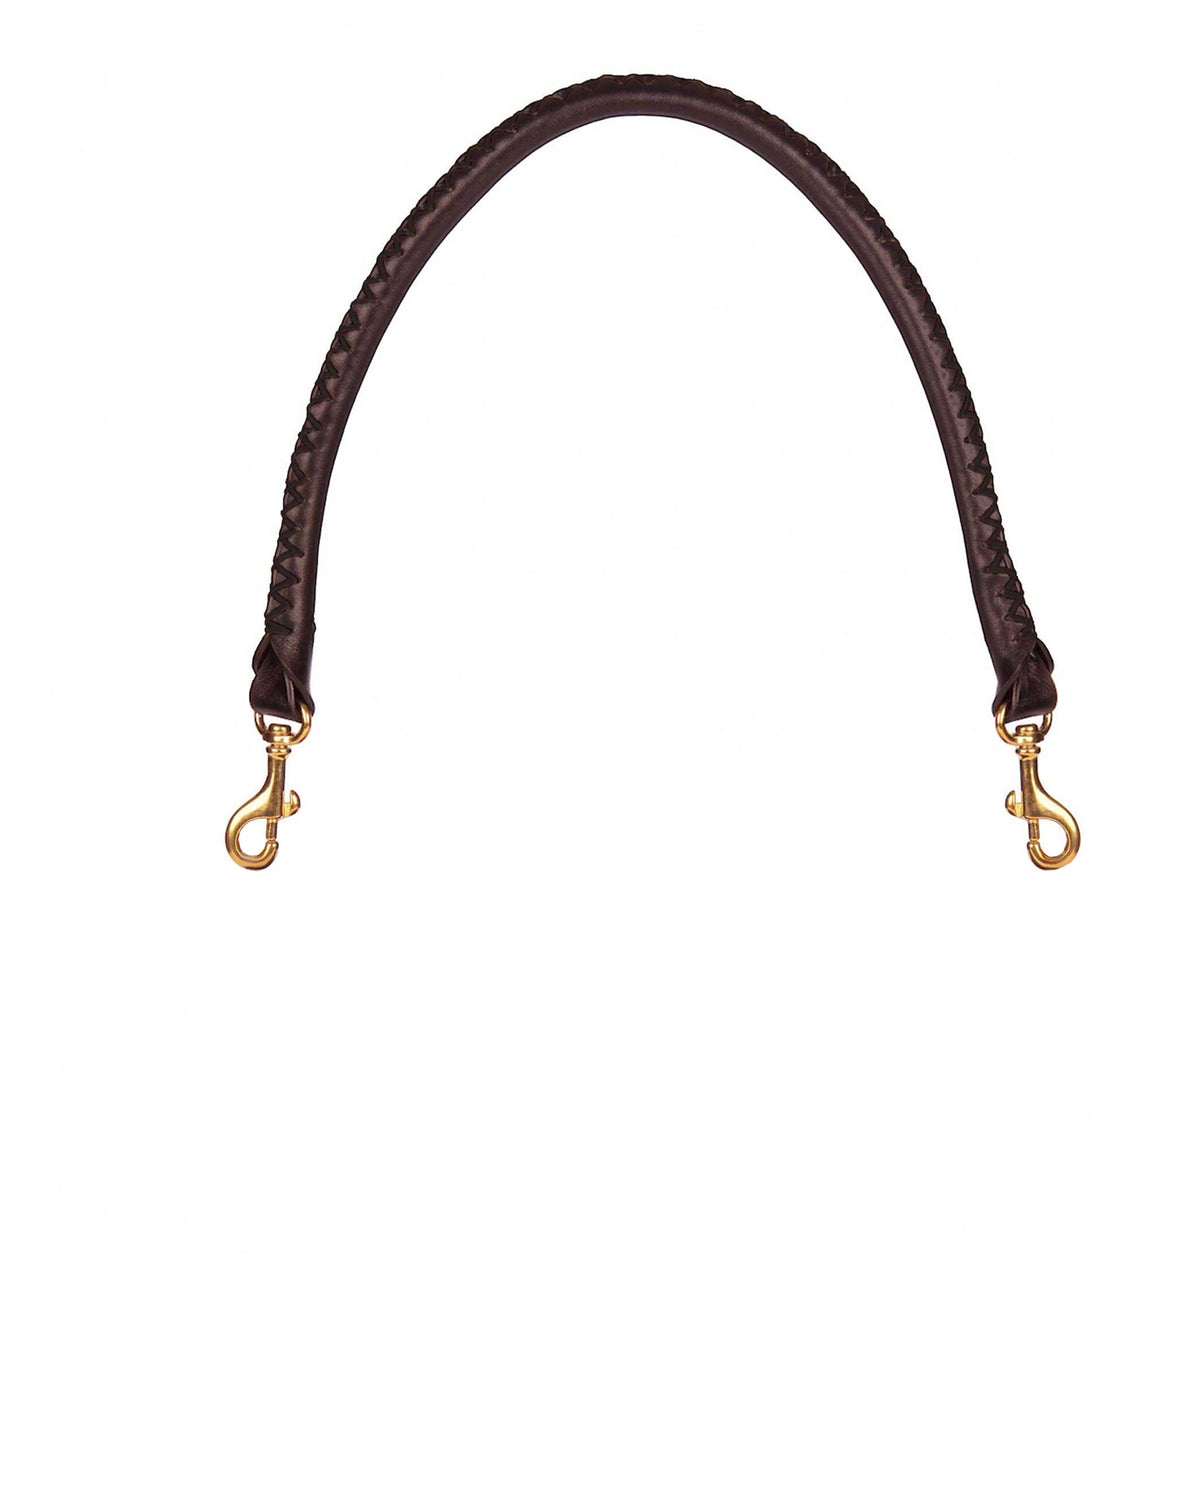 HAND-STITCHED SHOULDER STRAP in Chocolate Napa